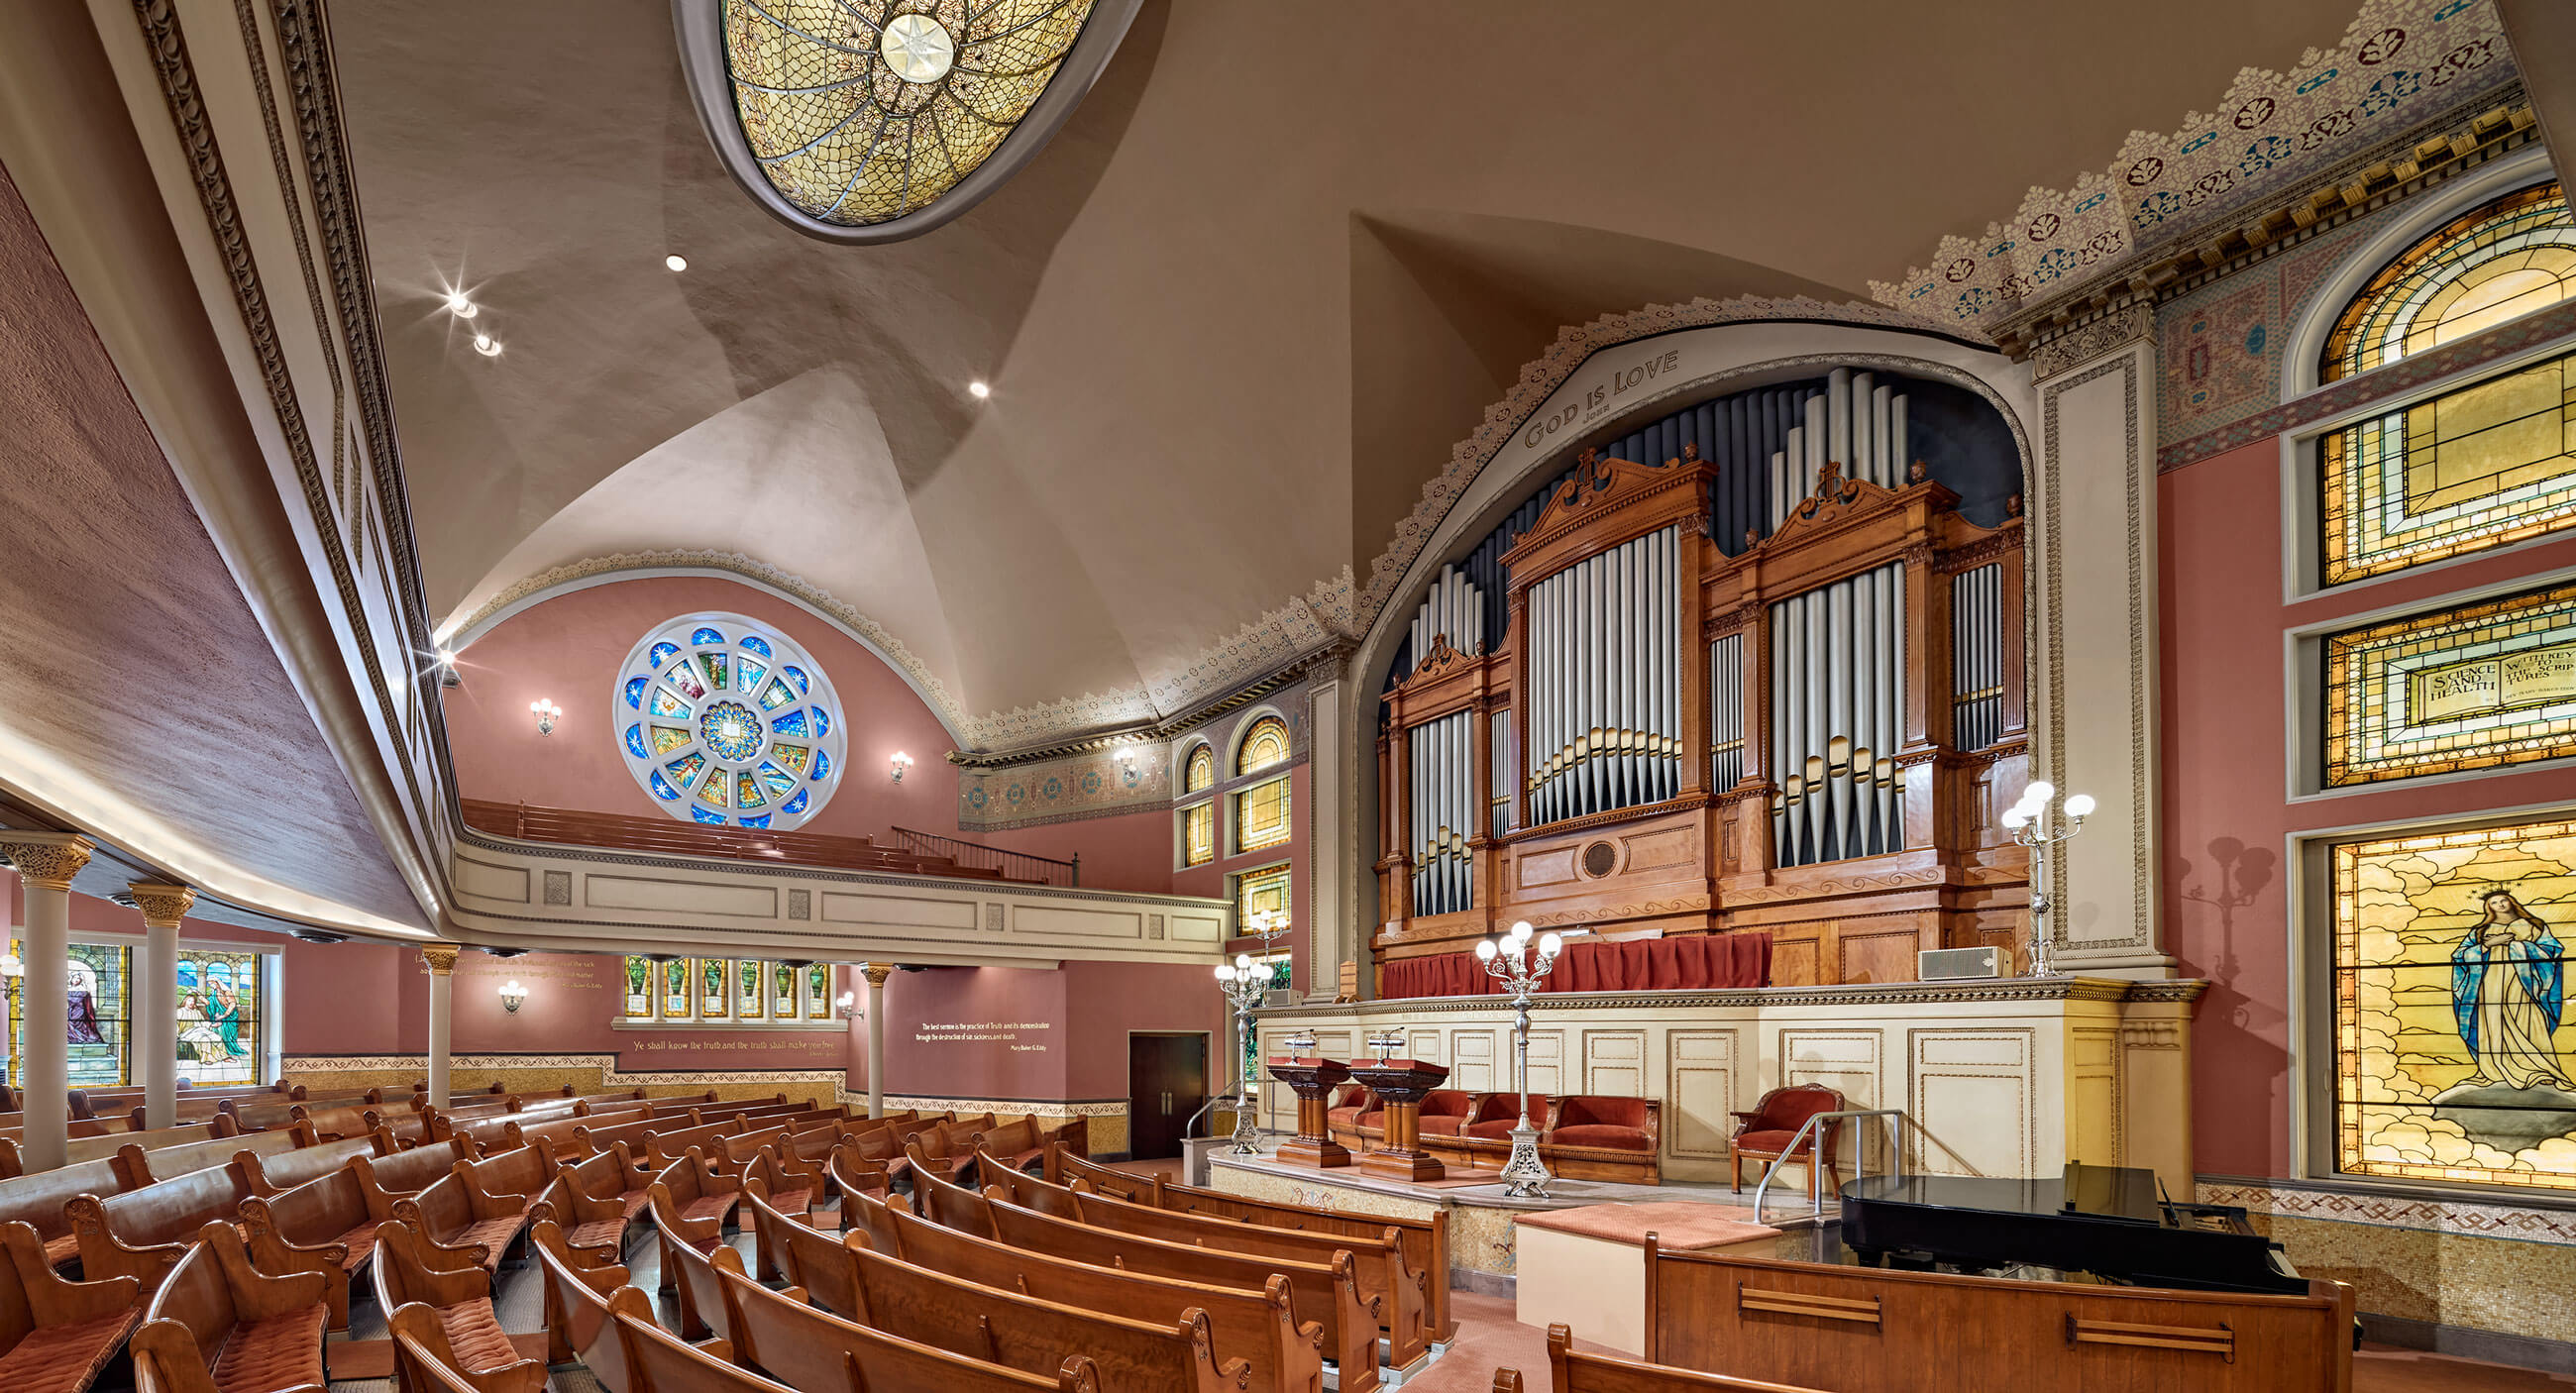 The Mother Church's interior, featuring an organ, curved pews, stained glass, rose windows and an alter, with pink walls.